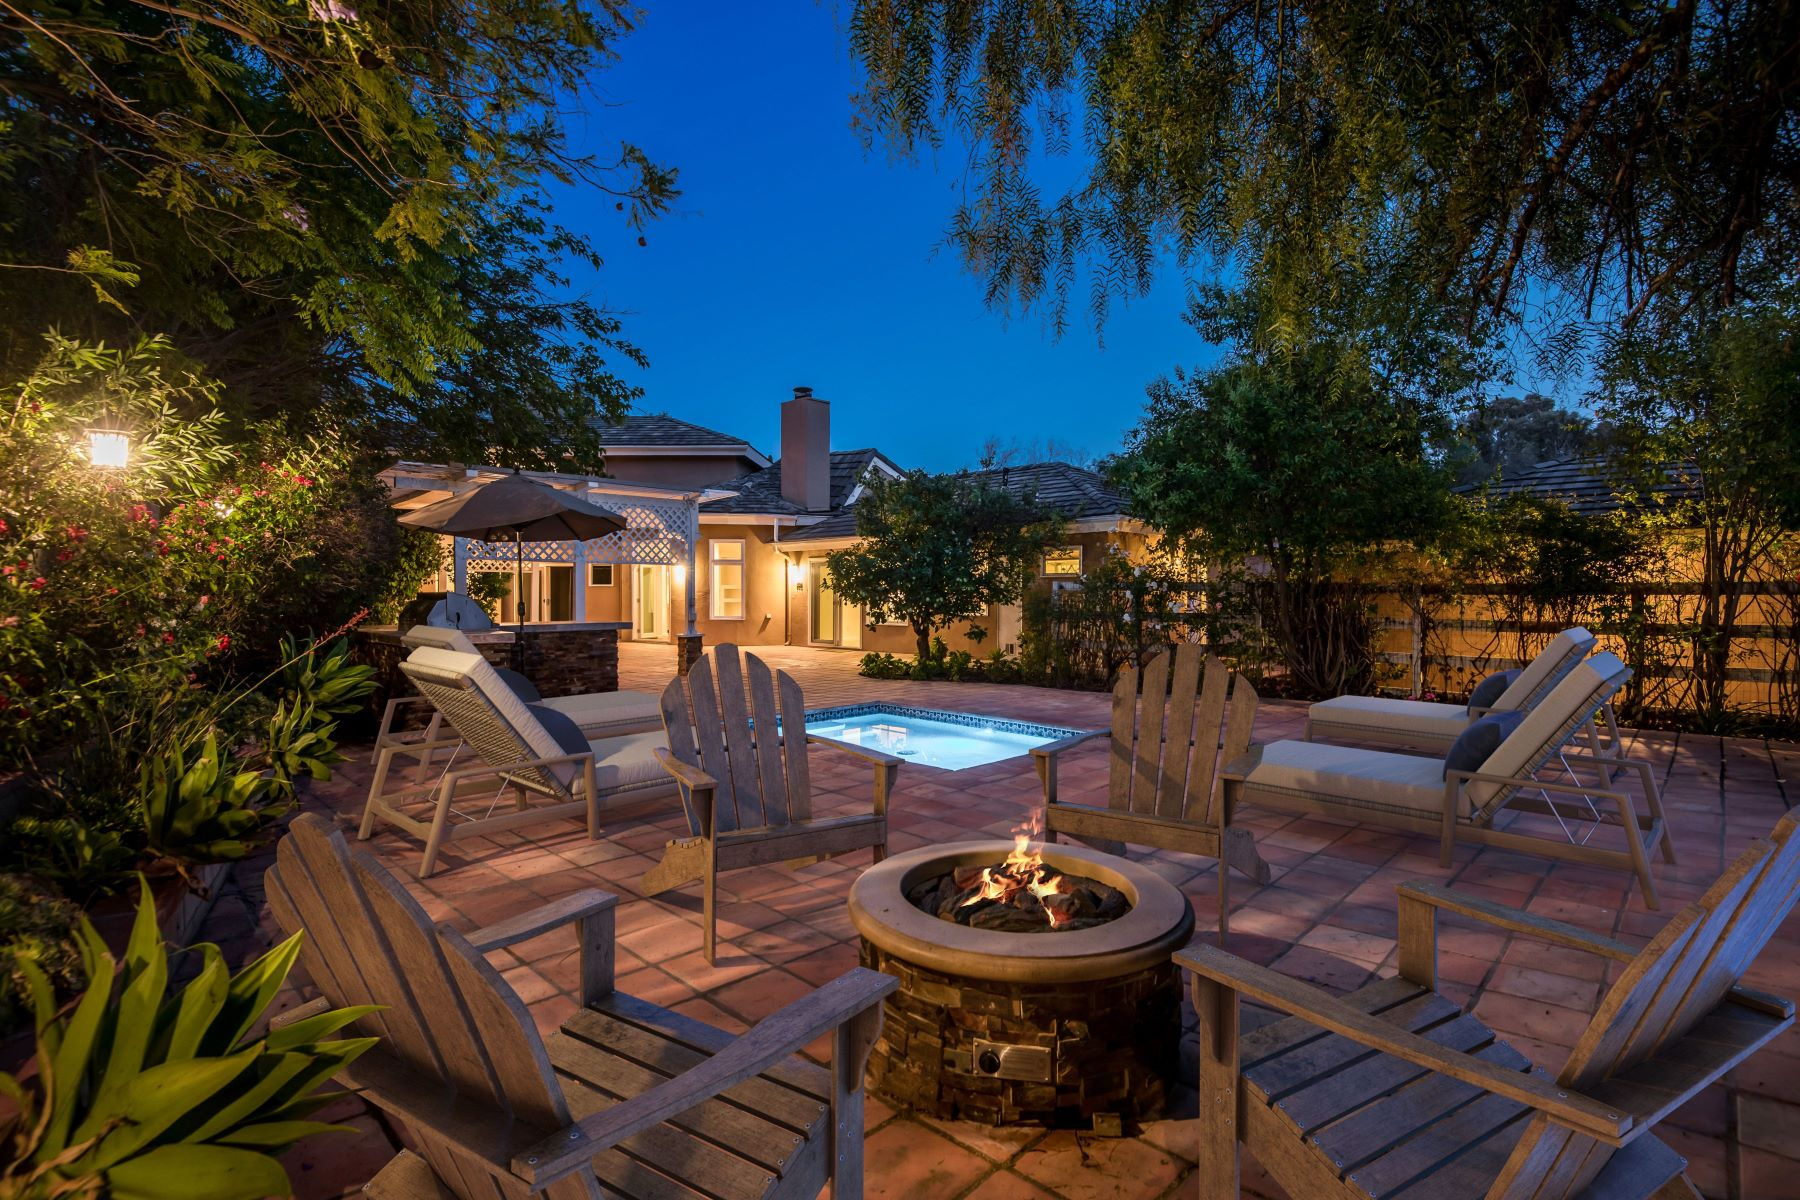 Single Family Homes for Sale at 23747 Oakfield Road, Hidden Hills, CA 91302 23747 Oakfield Road Hidden Hills, California 91302 United States